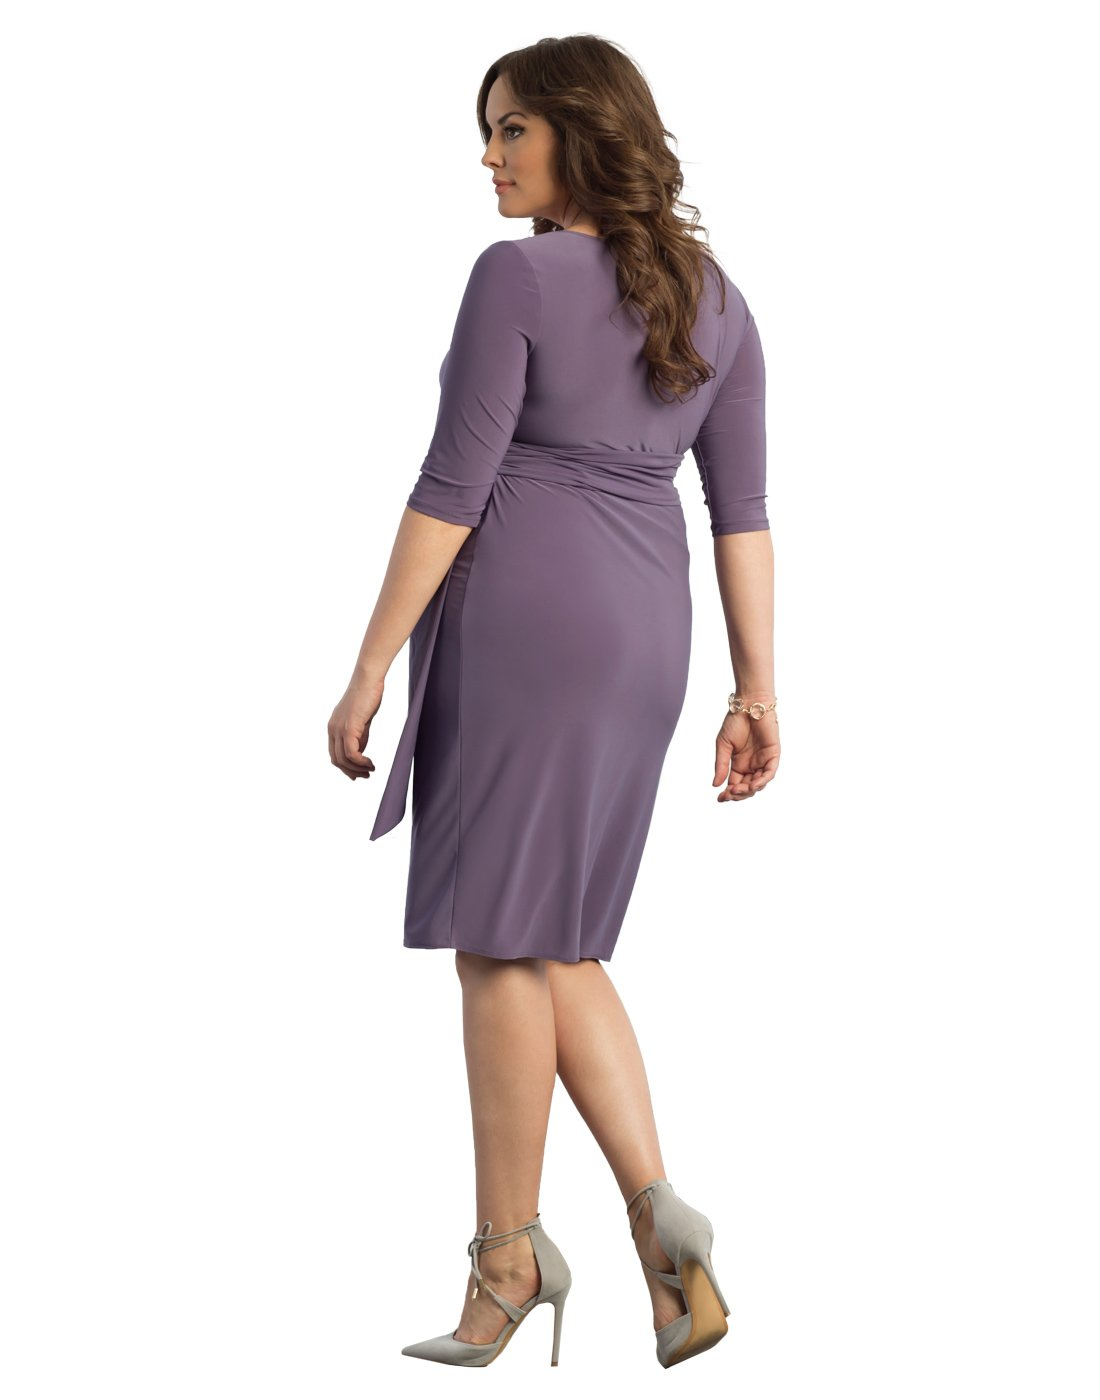 ab1a822ae894 Home/Brands/Kiyonna Dresses/Kiyonna Women's Plus Size Harlow Faux Wrap Dress  2X Lavender Fields. ; 